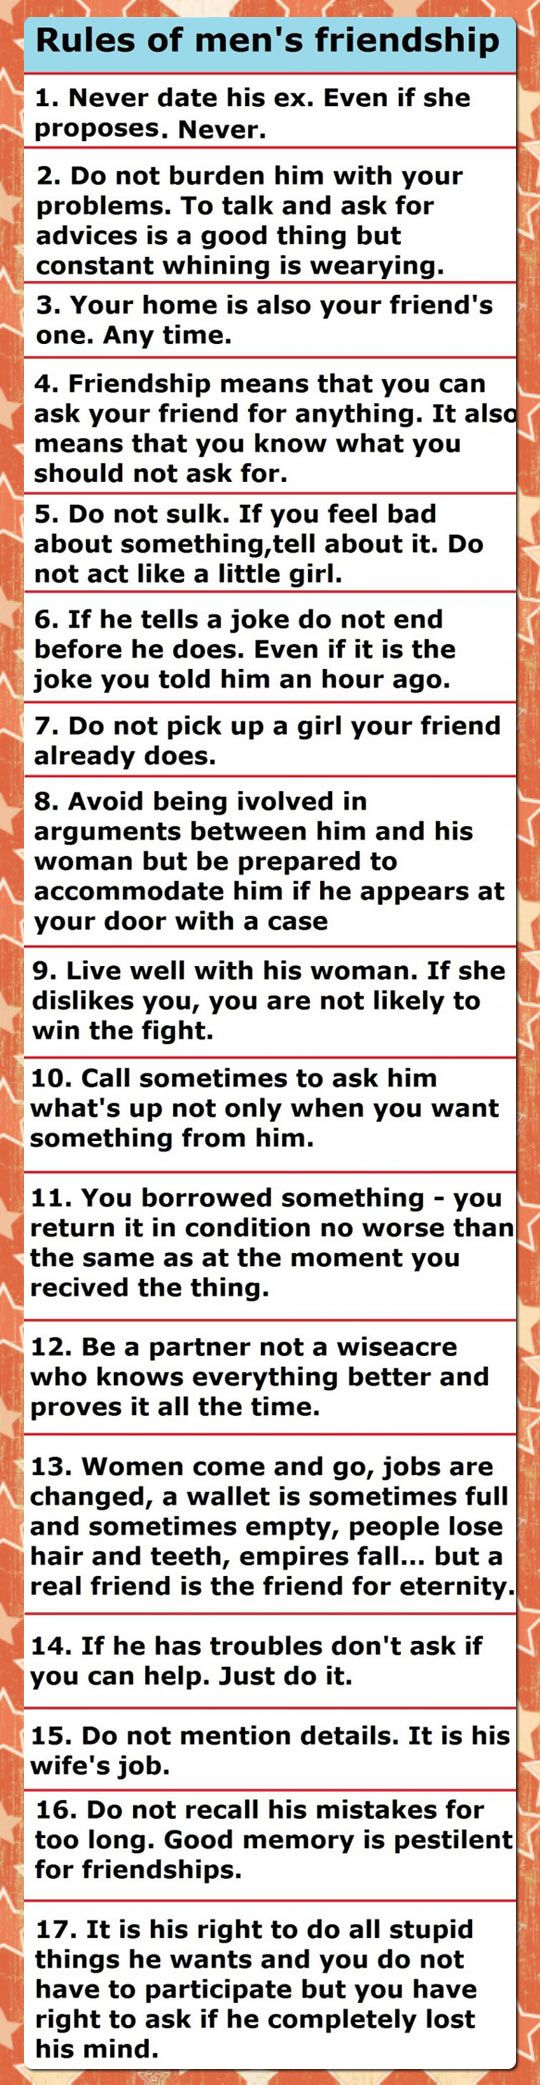 Bro Code's Most Important Rules (I wonder what the original language was, because some of the translations are pretty awkward.  Still good advice, though.)